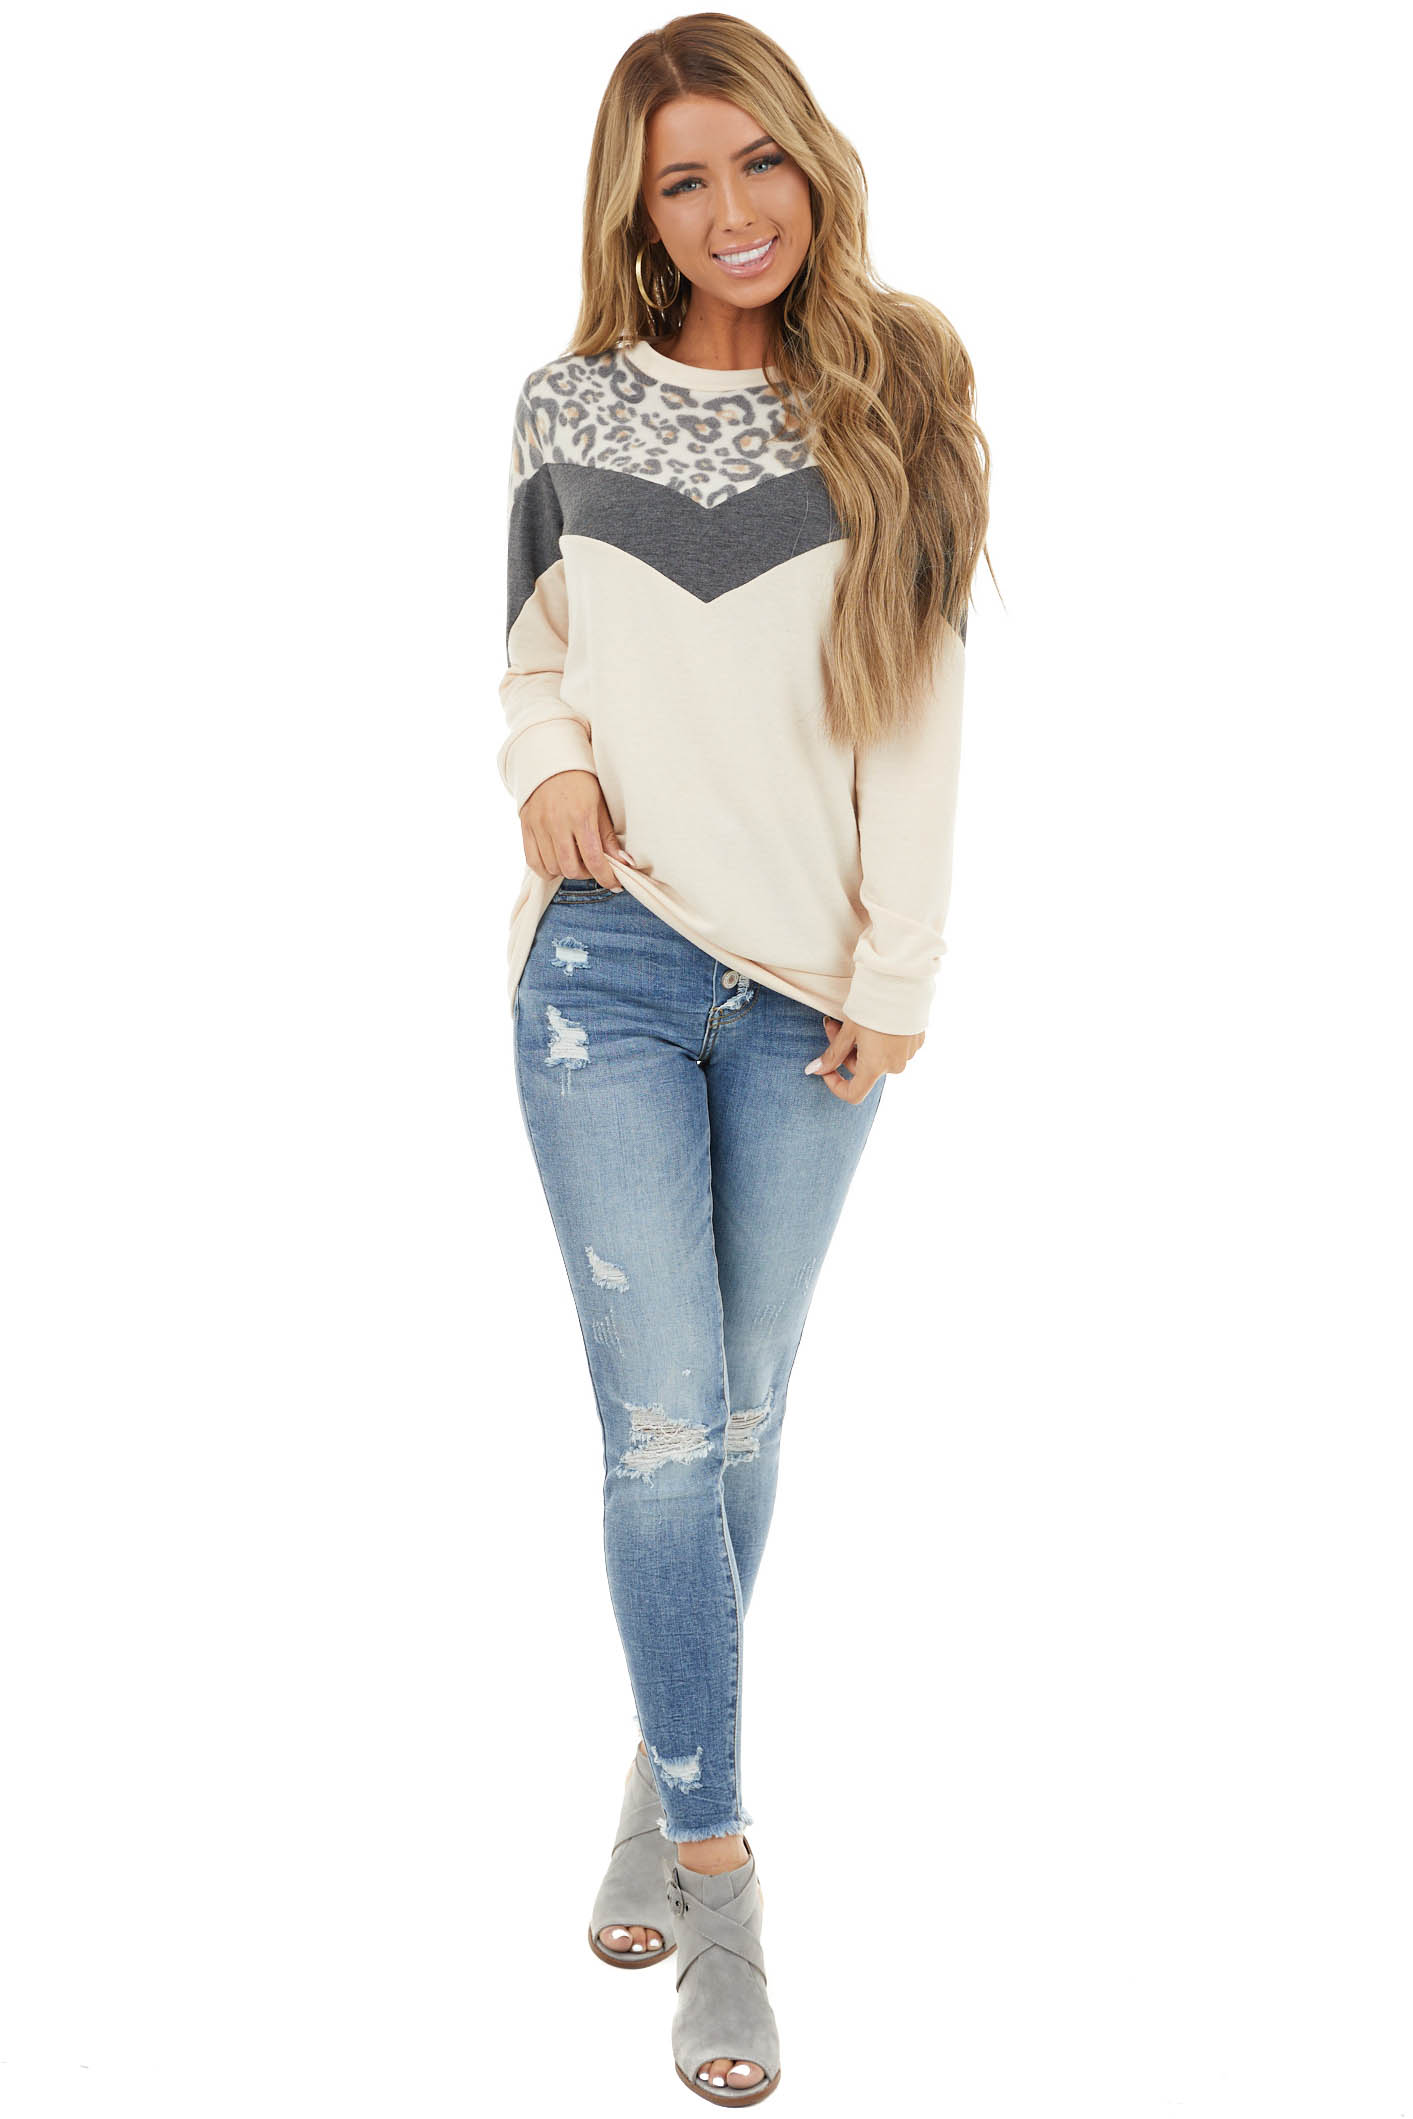 Beige and Fuzzy Leopard Print Color Block Long Sleeve Top